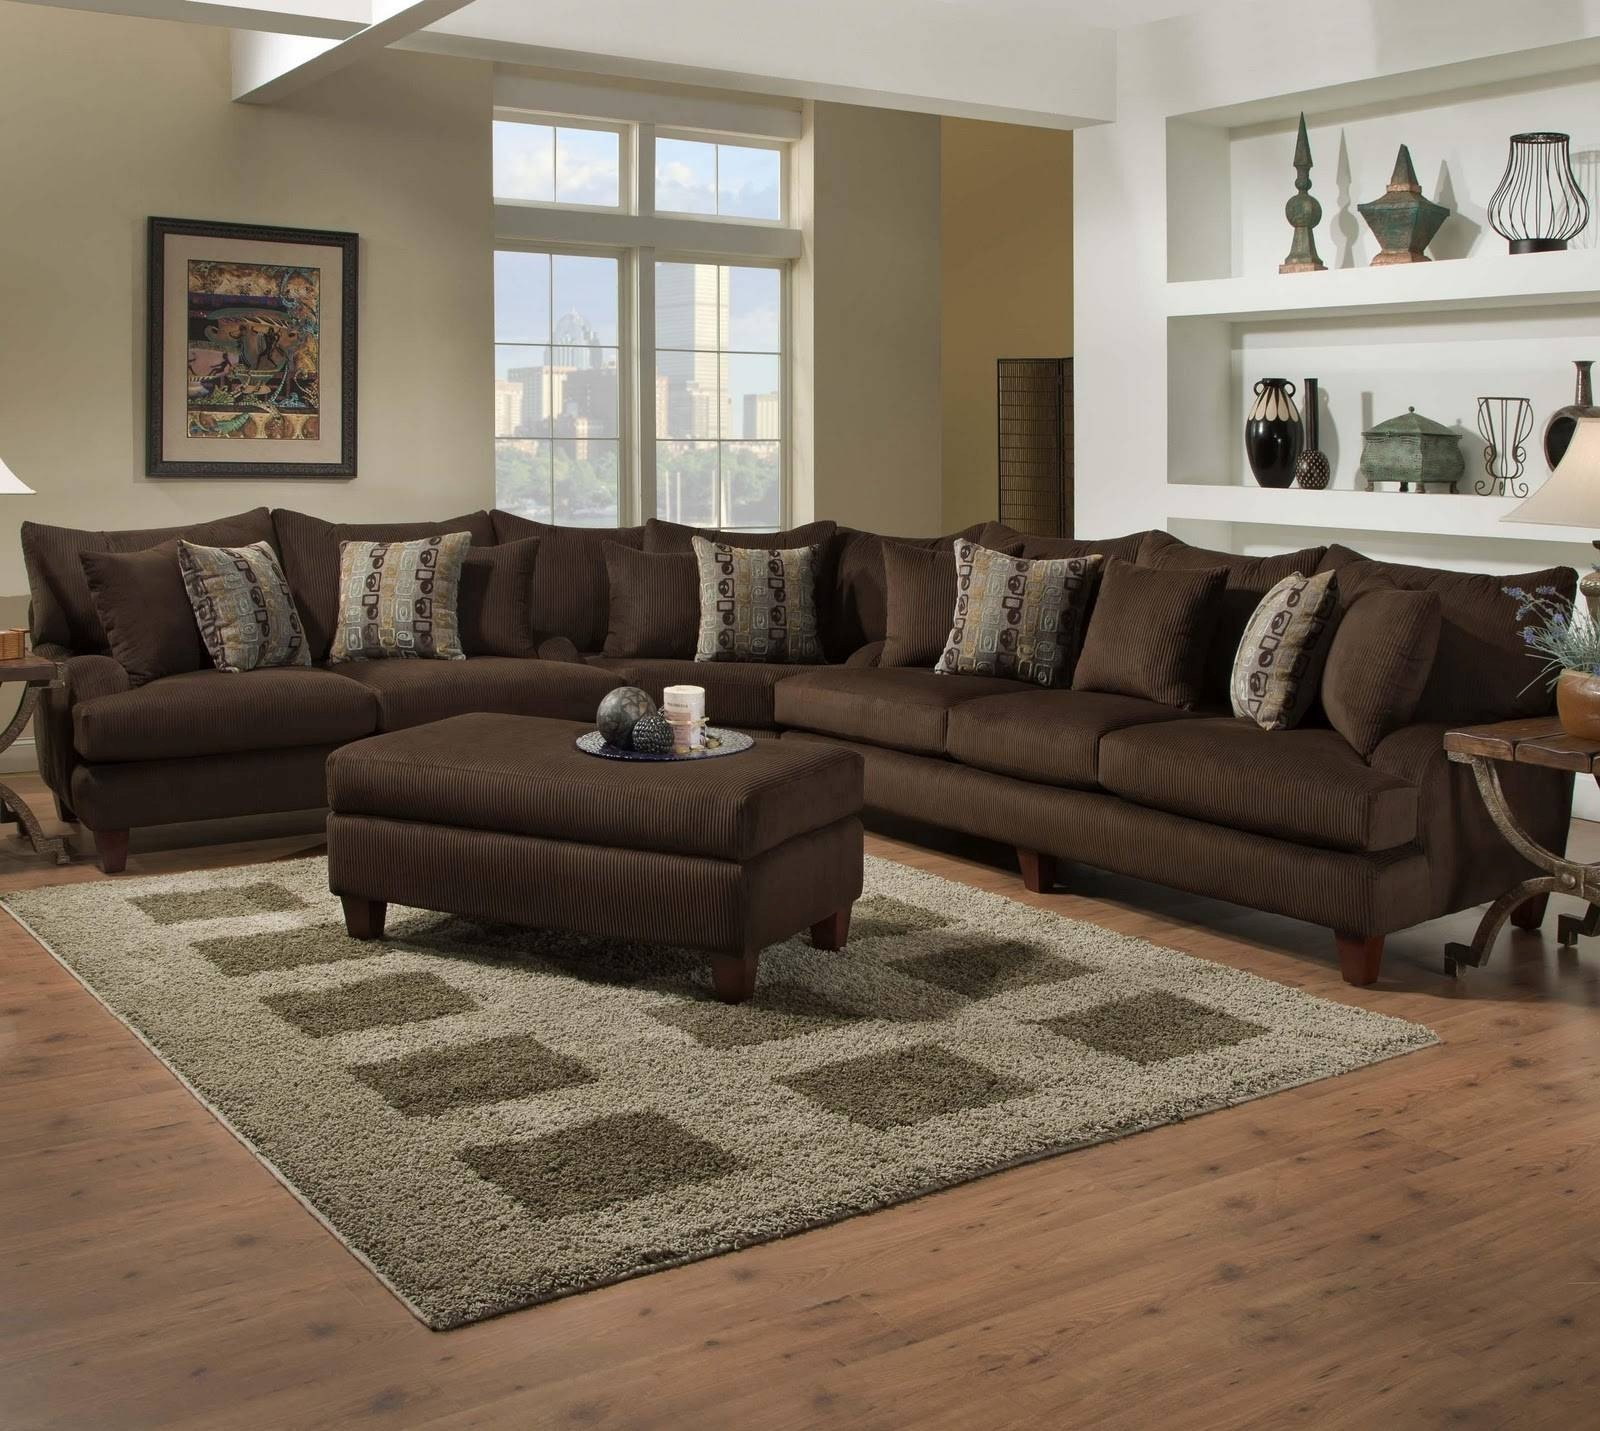 7 Seat Sectional sofa Fantastic the Best 7 Seat Sectional sofa Picture